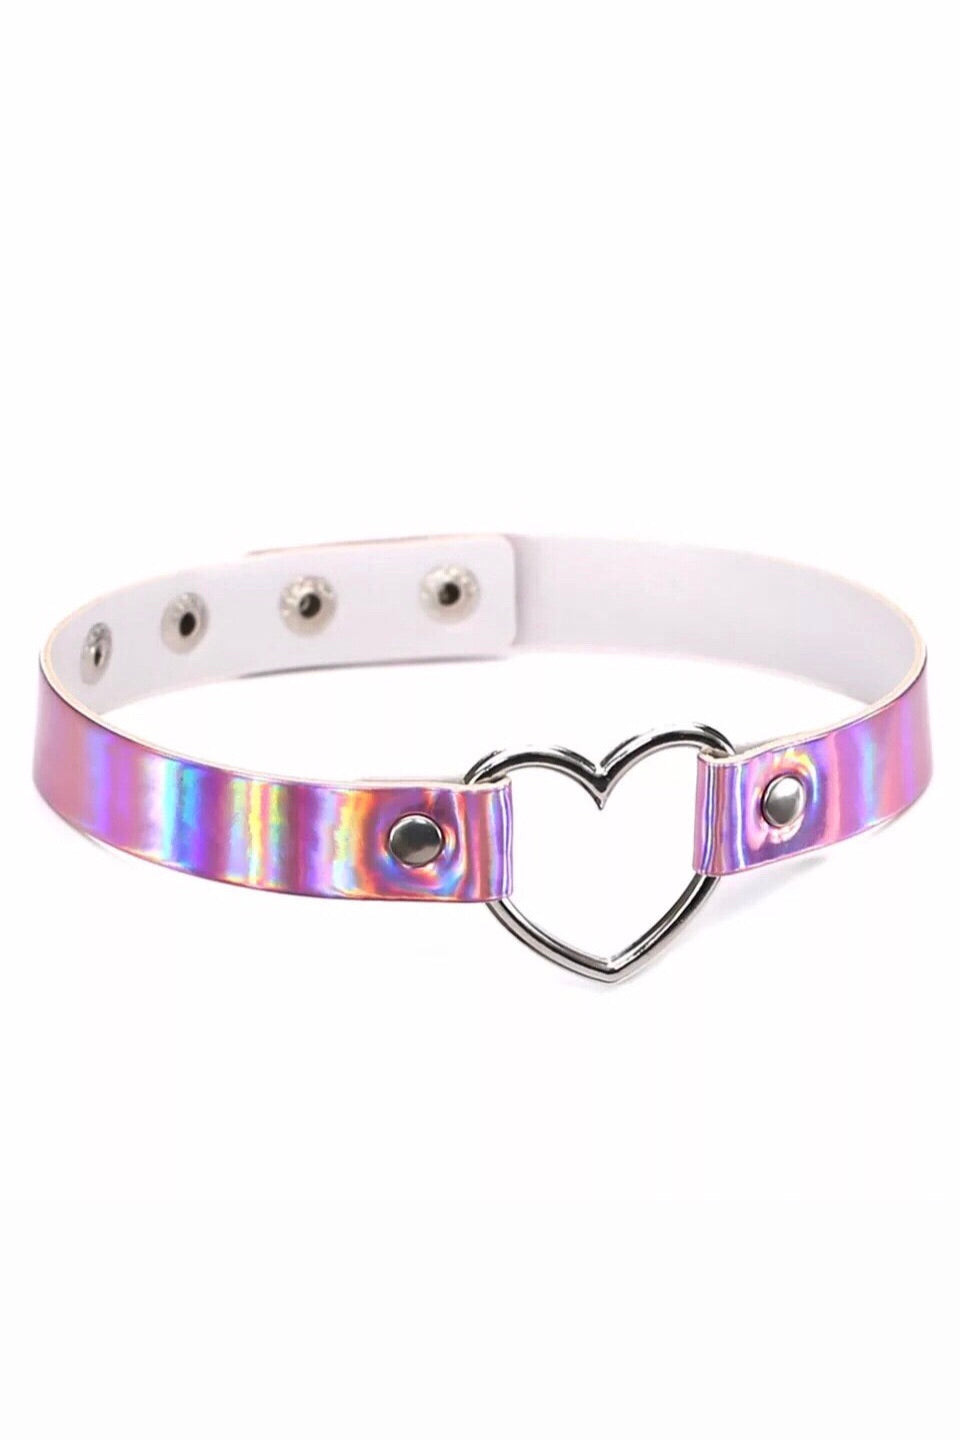 PINK HOLOGRAPHIC HEART CHOKER